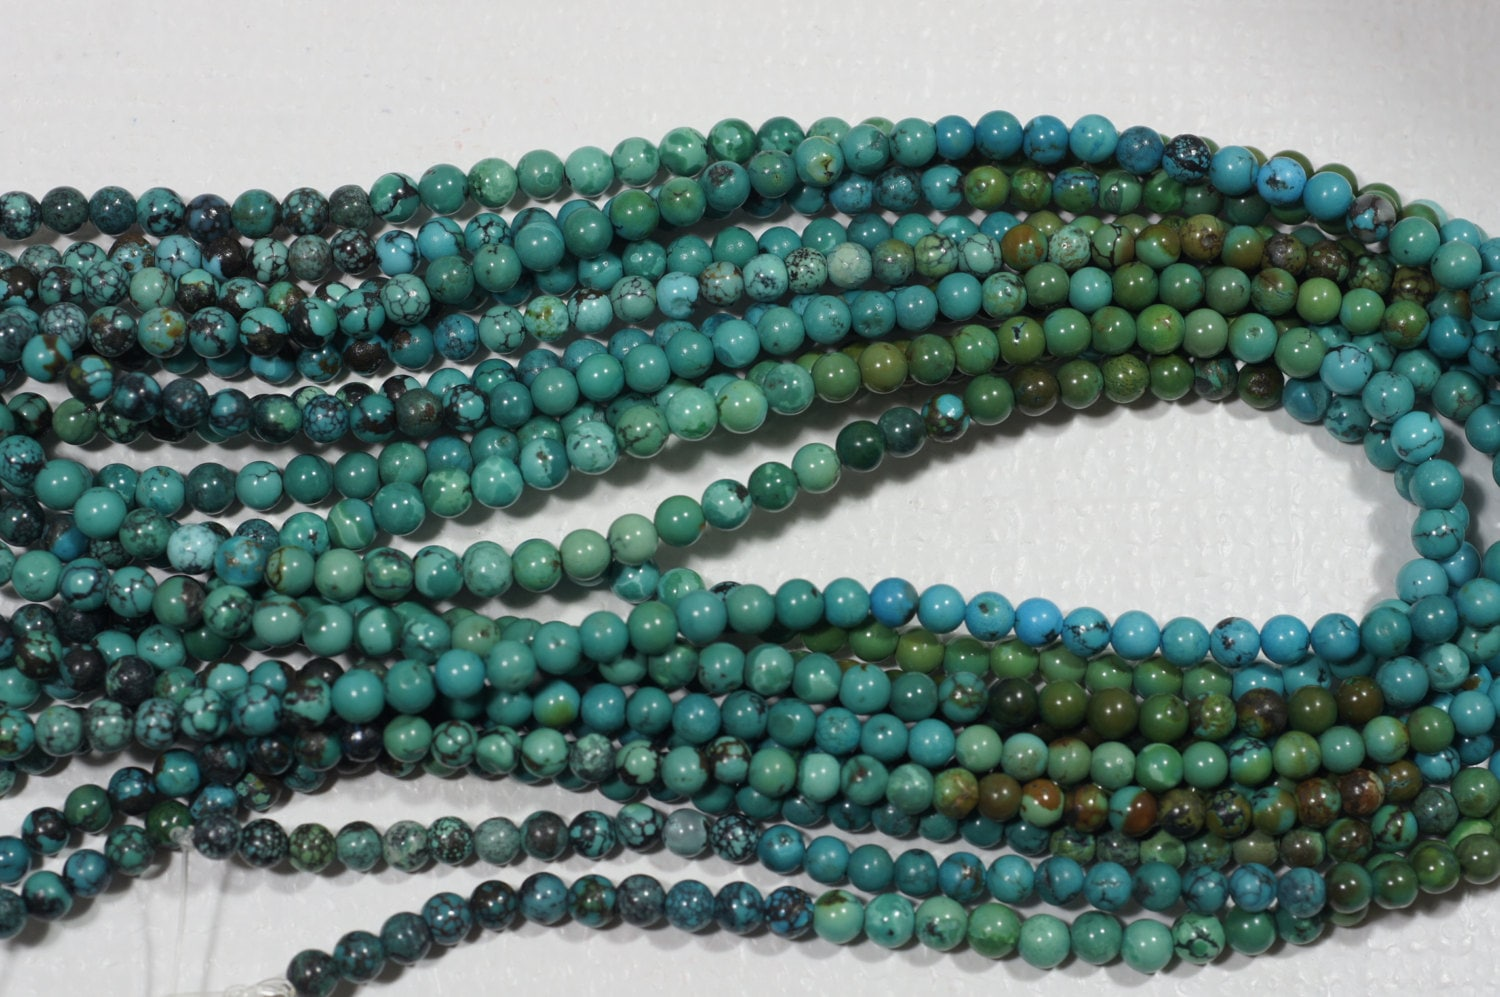 African turquoise natural gemstone beads jewelry making for Birthstone beads for jewelry making